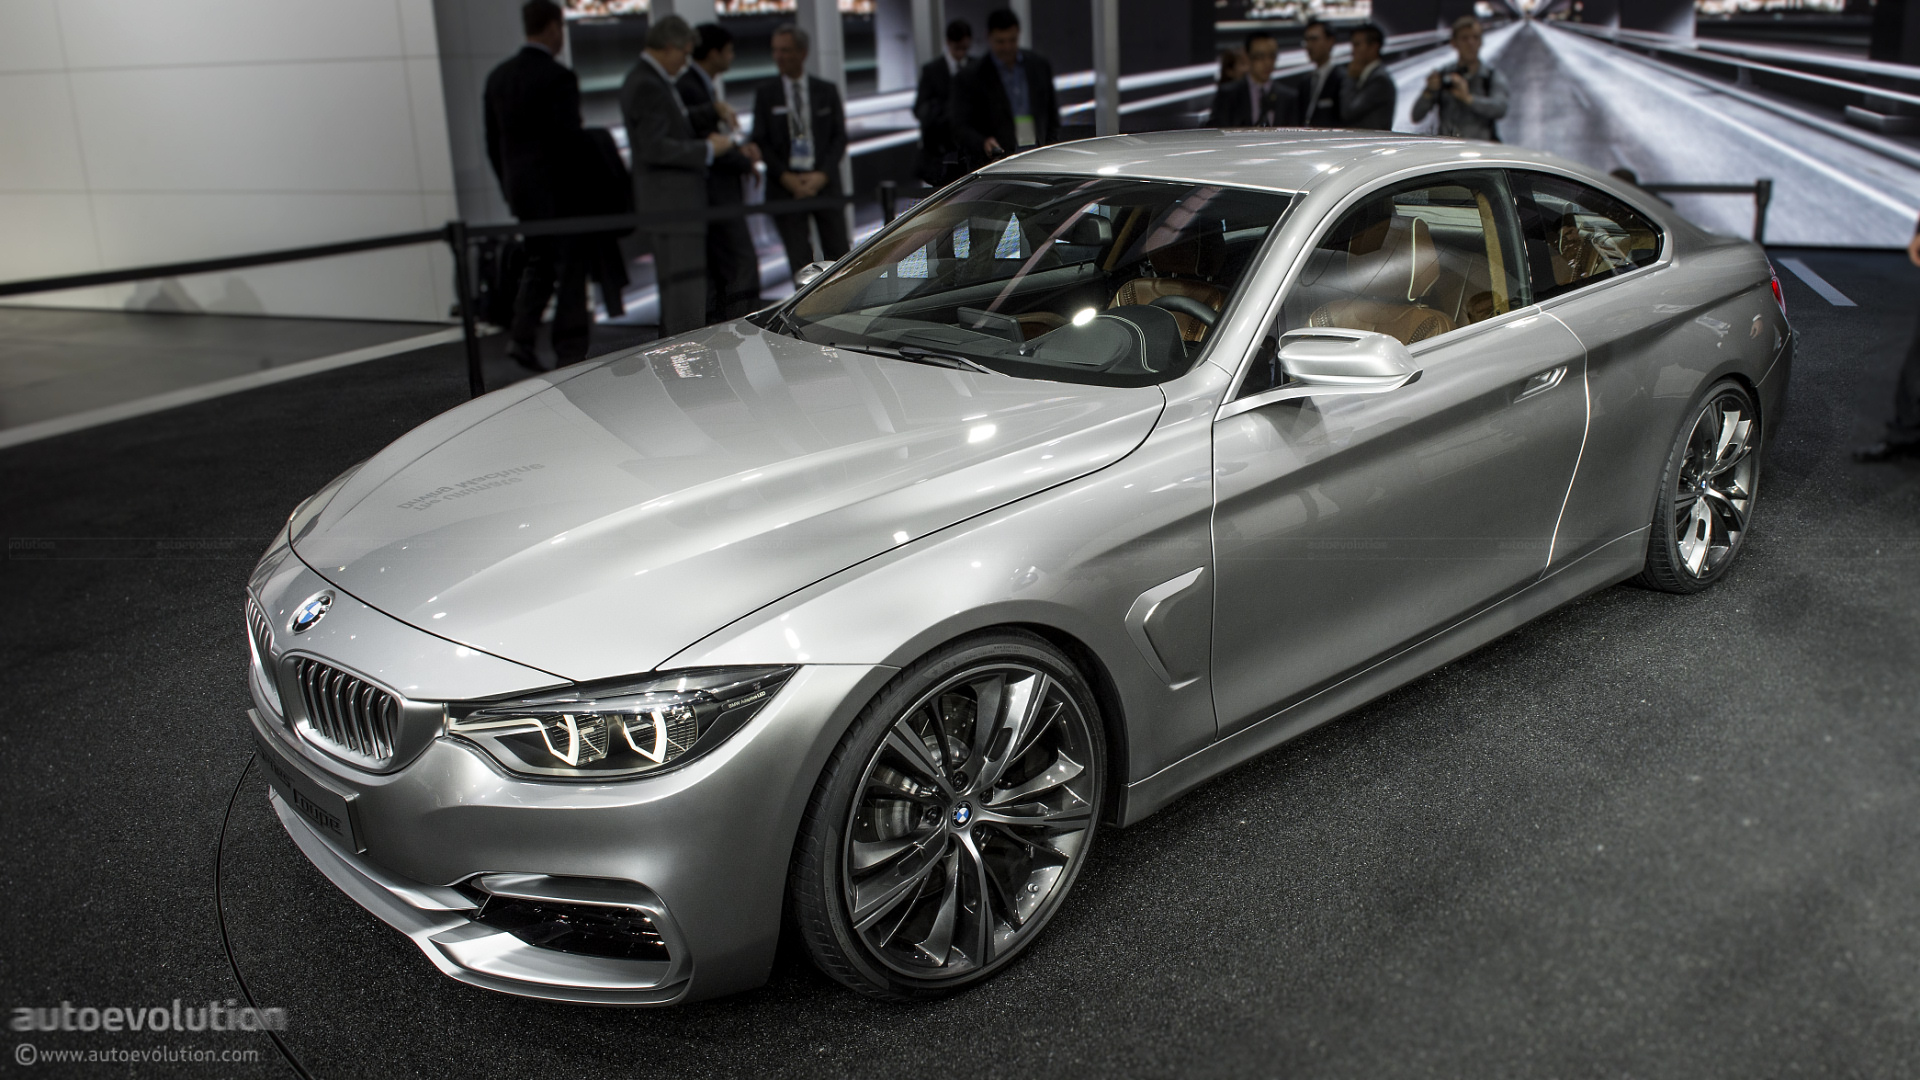 BMW 4 series 418d 2013 photo - 7